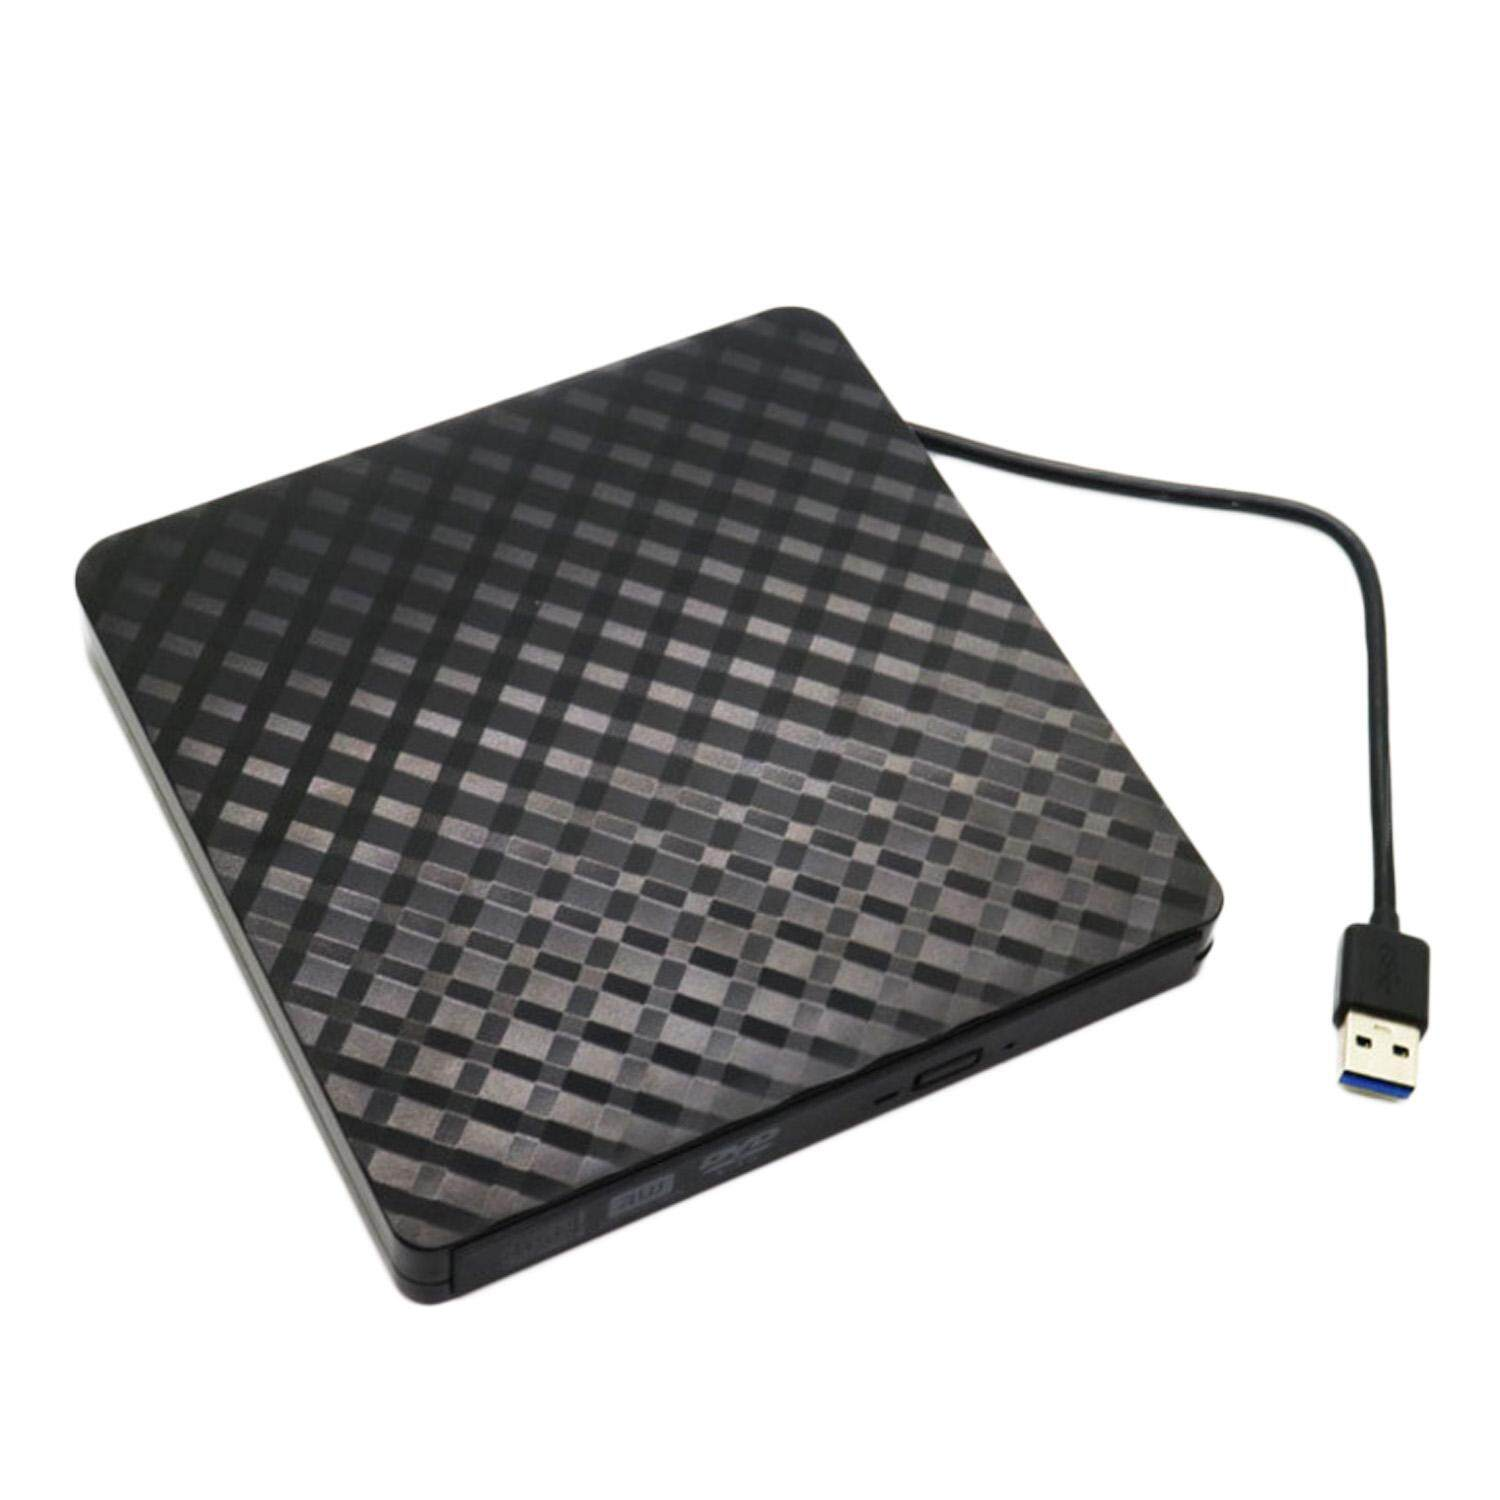 3D Imitate Diamond Surface Style USB 3.0 DVD ROM Player CD-RW External DVD Optical Drive Writer Recorder for Laptop Computer PC